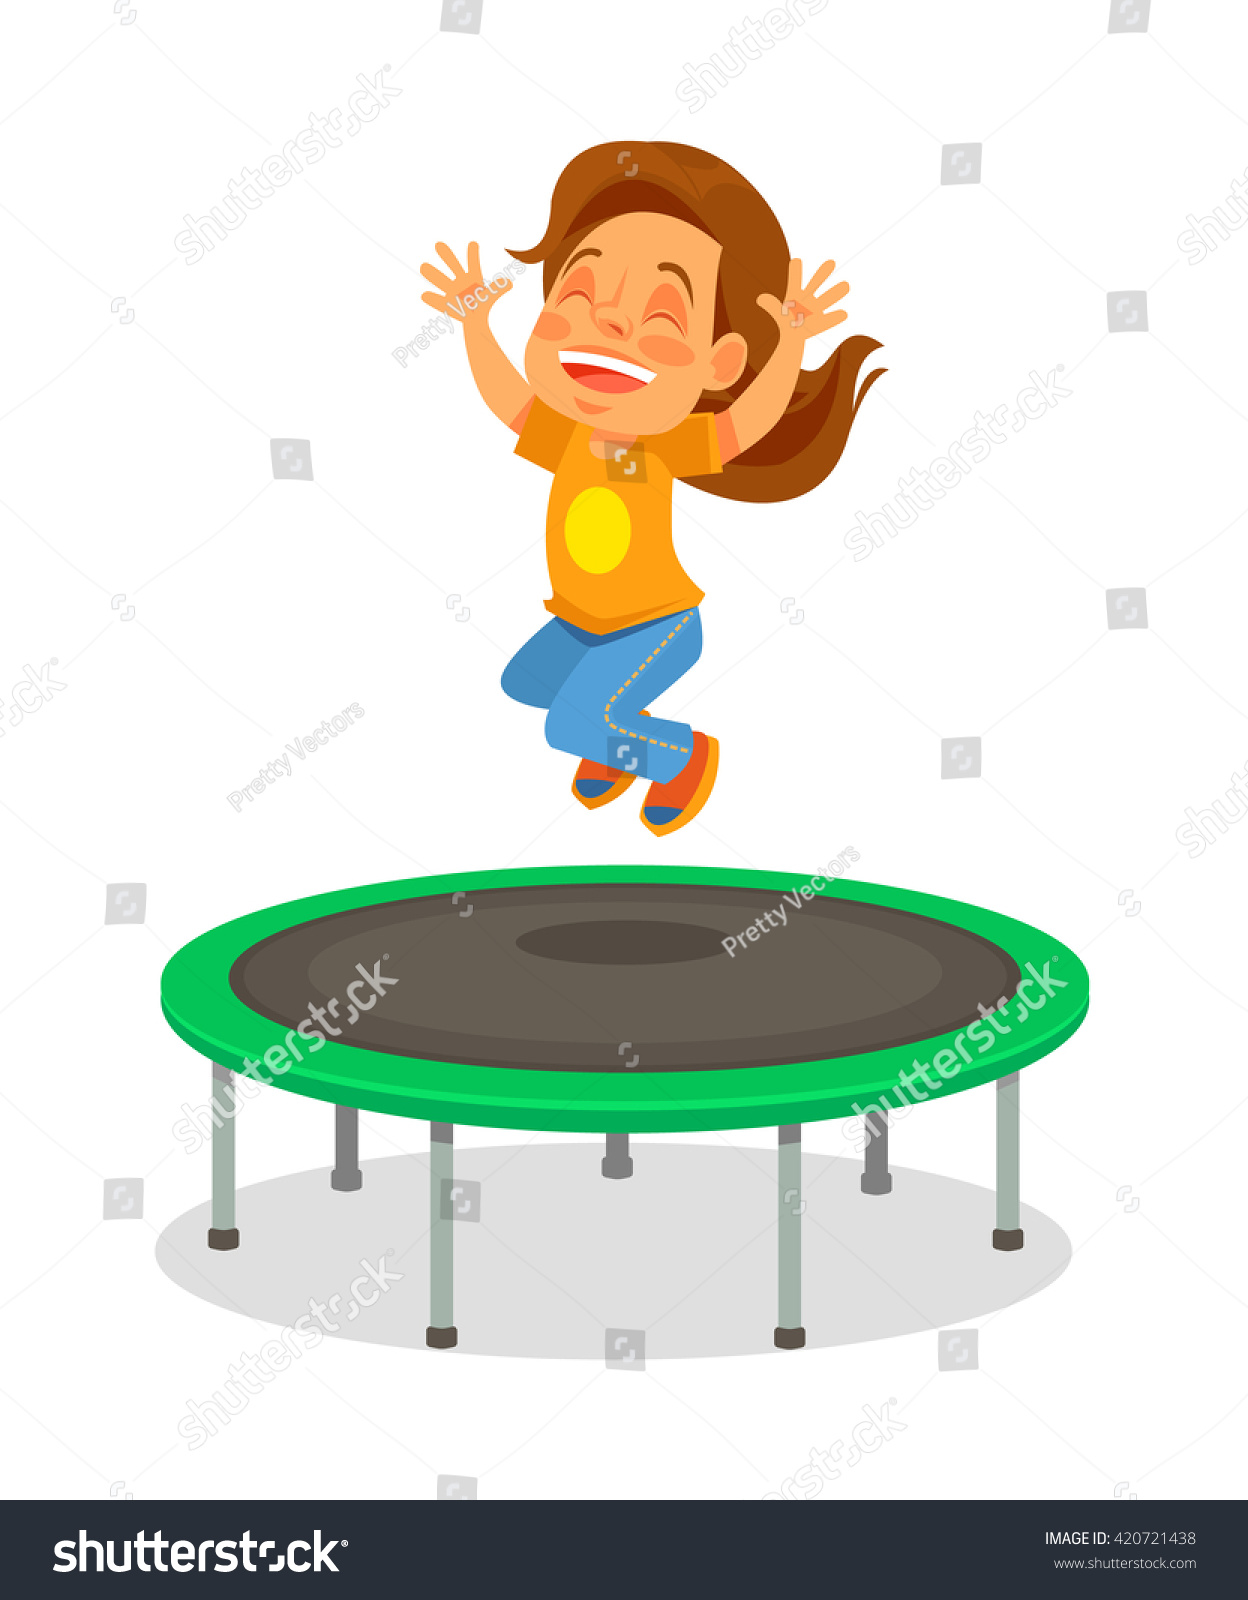 Tappeto Elastico Energetics Girl Jumping On Trampoline Vector Flat Stock Vector